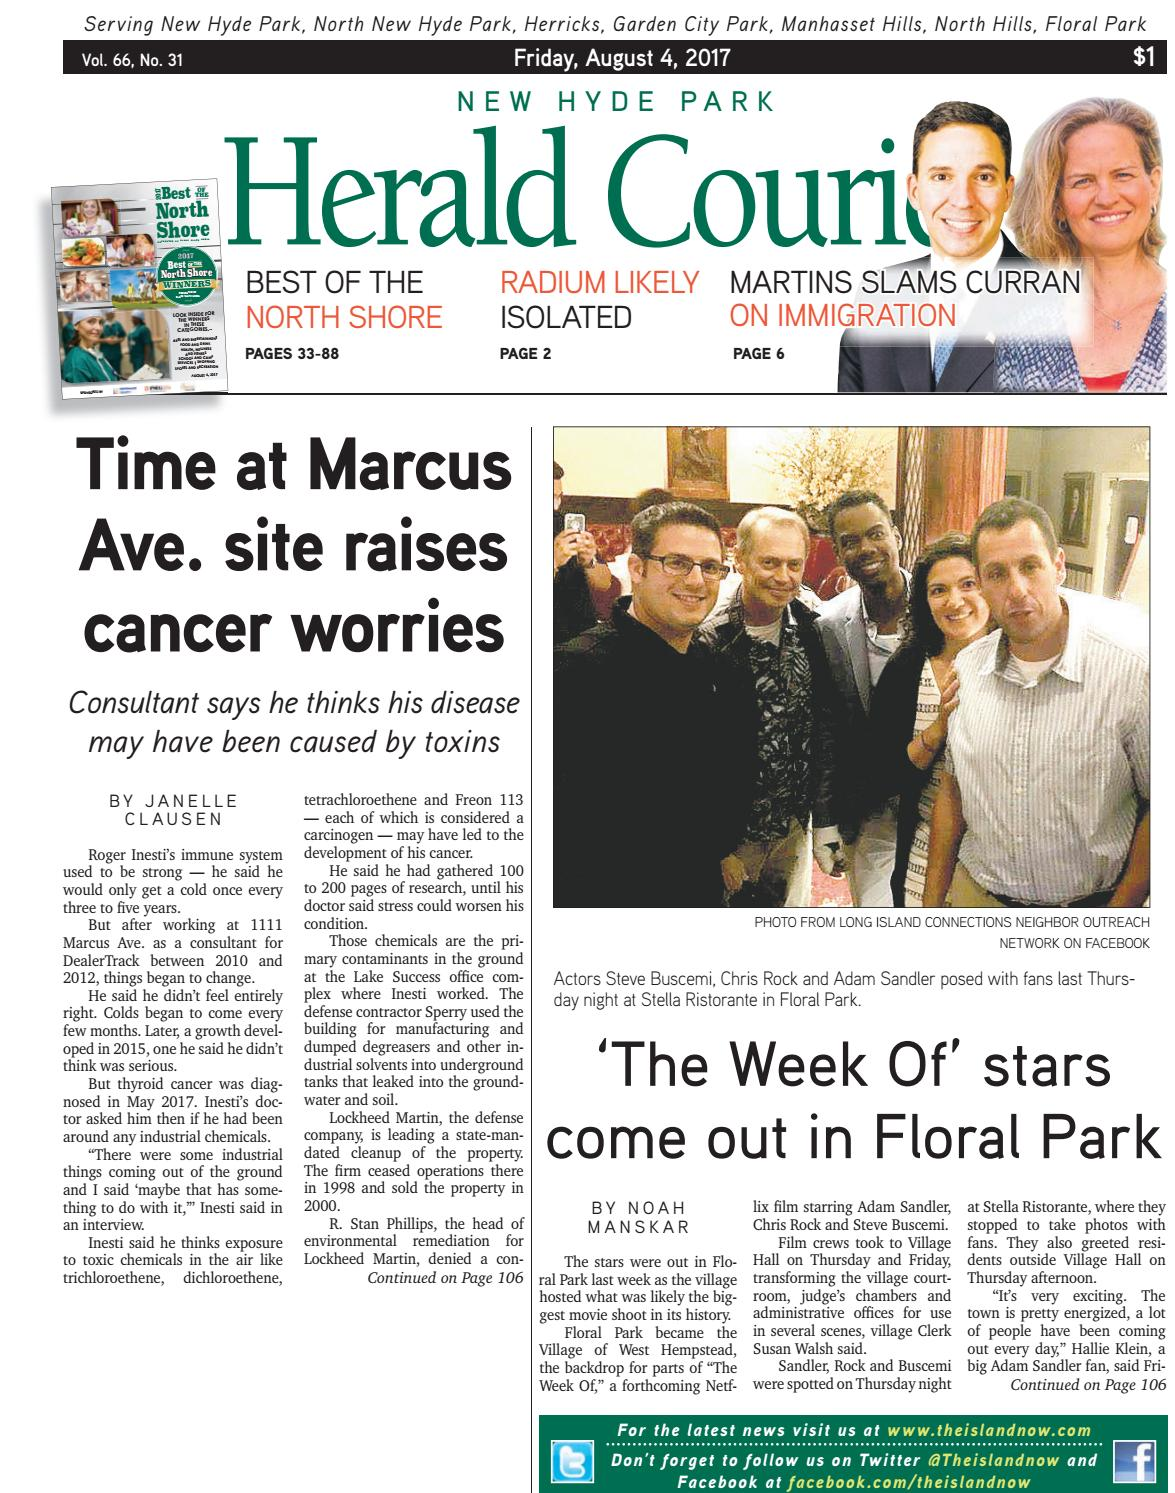 Herald courier 08 04 17 by The Island Now issuu